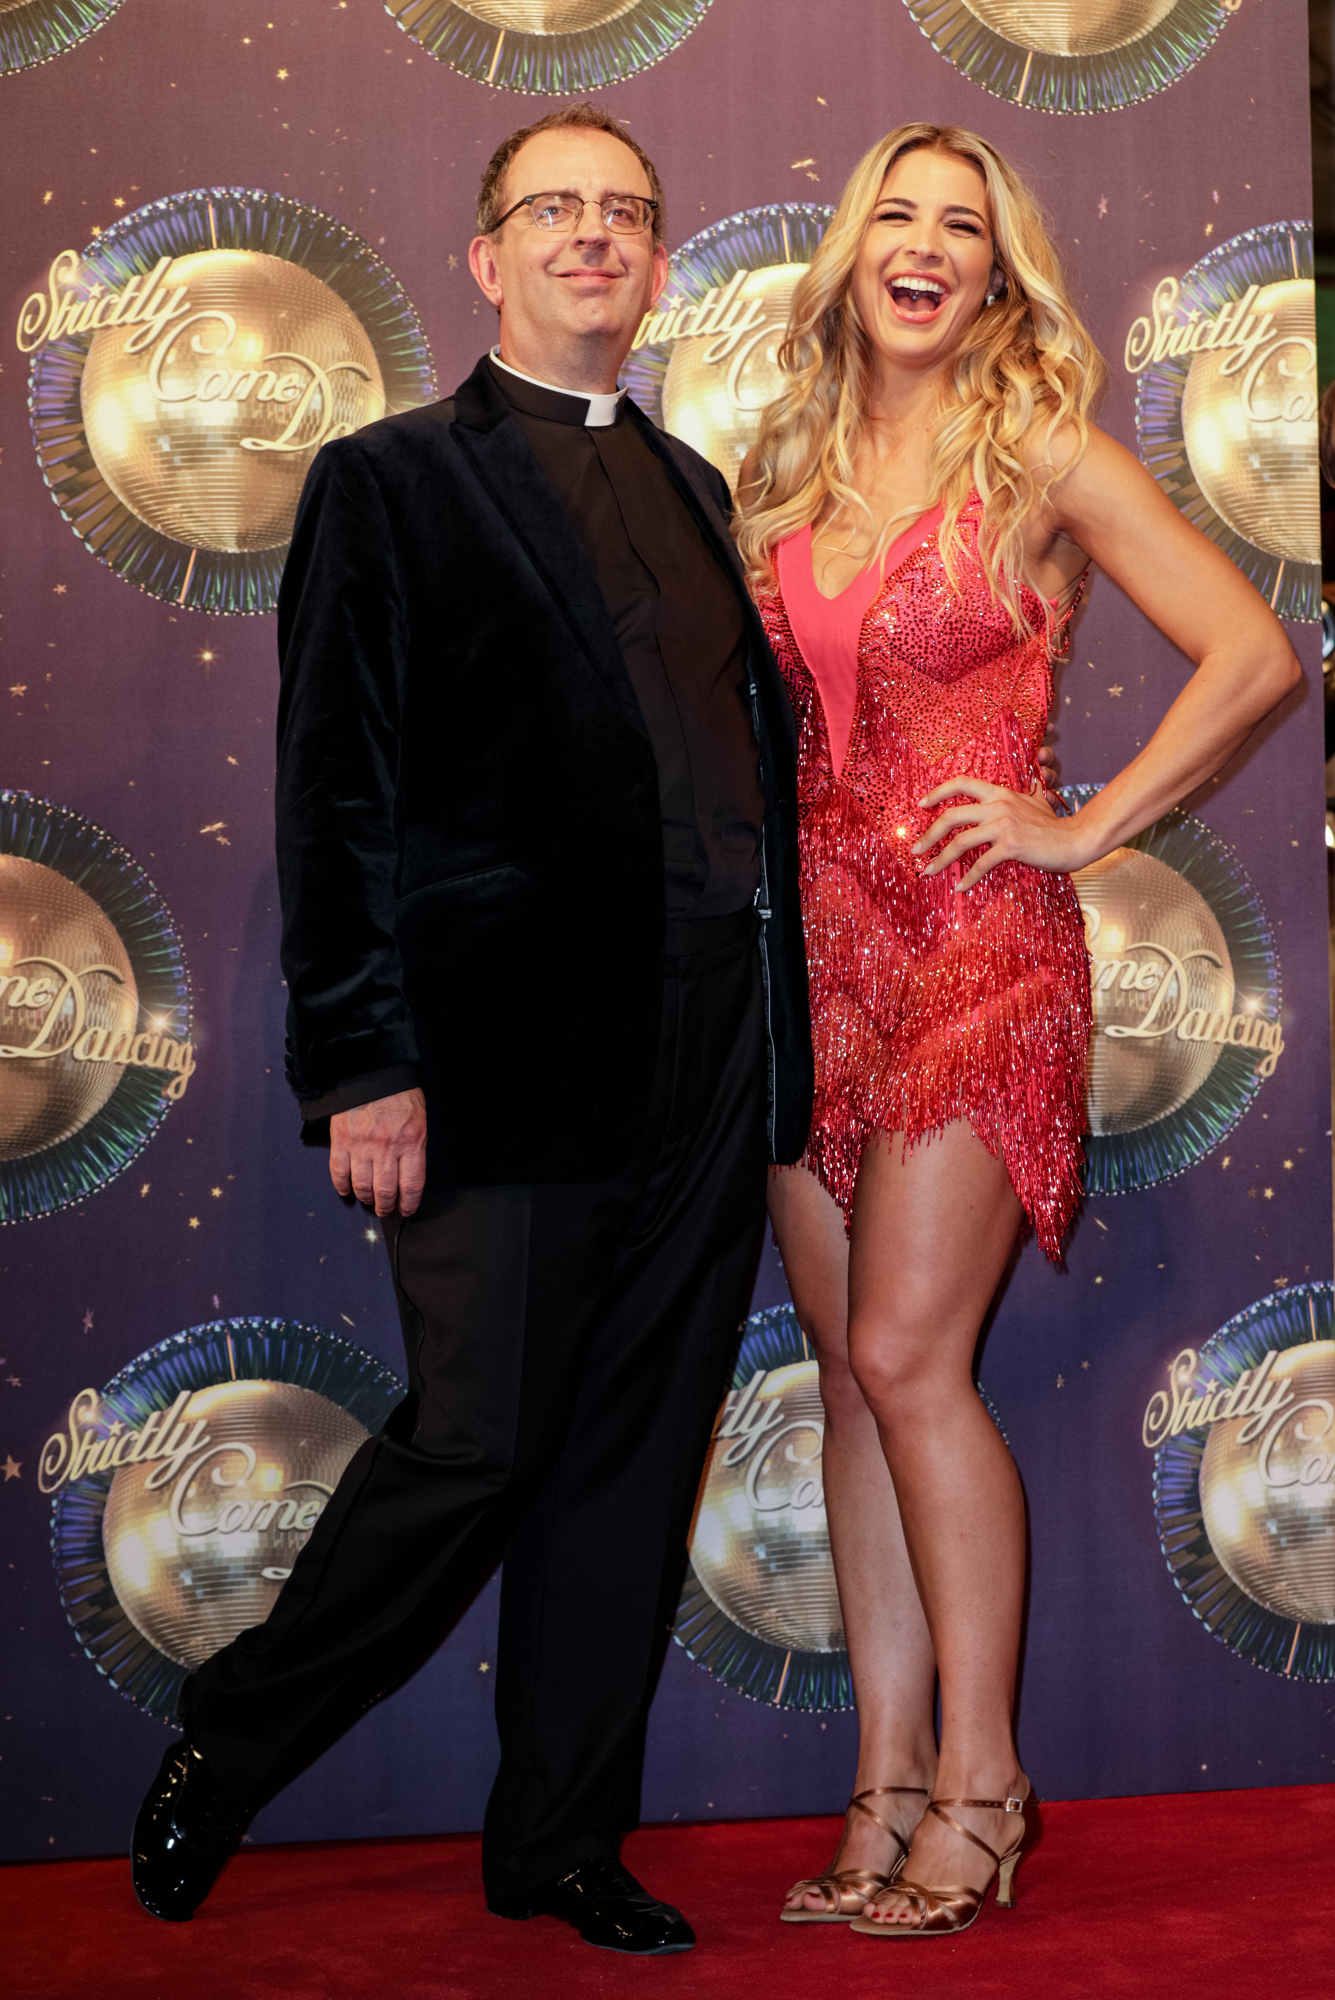 PHT_B5327_strictly_come_dancing_14143.JPG